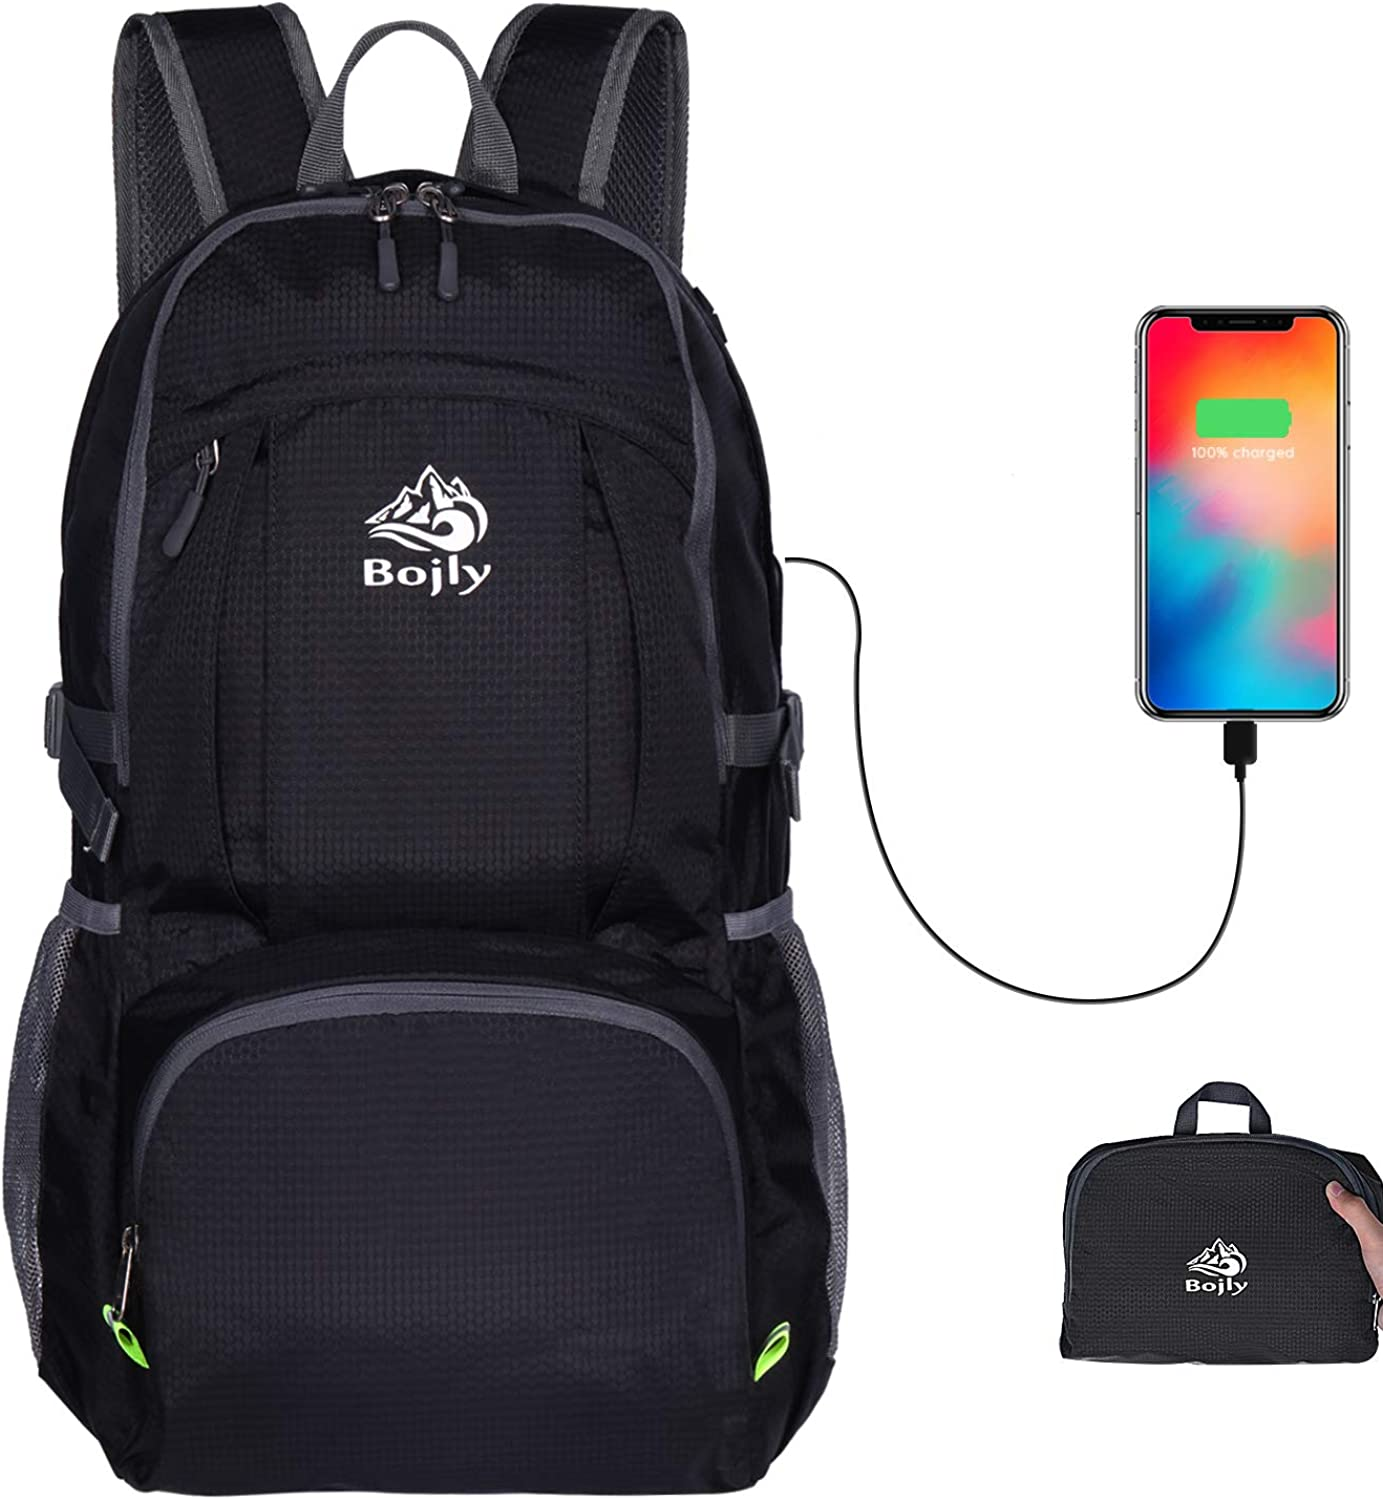 Bojly Lightweight Foldable Packable Backpack With USB Charging Port for Traveling Camping 40L Waterproof Hiking Ultralight Backpack Light Backpack for Travel Hiking Bag Day Pack for Men Women Kids